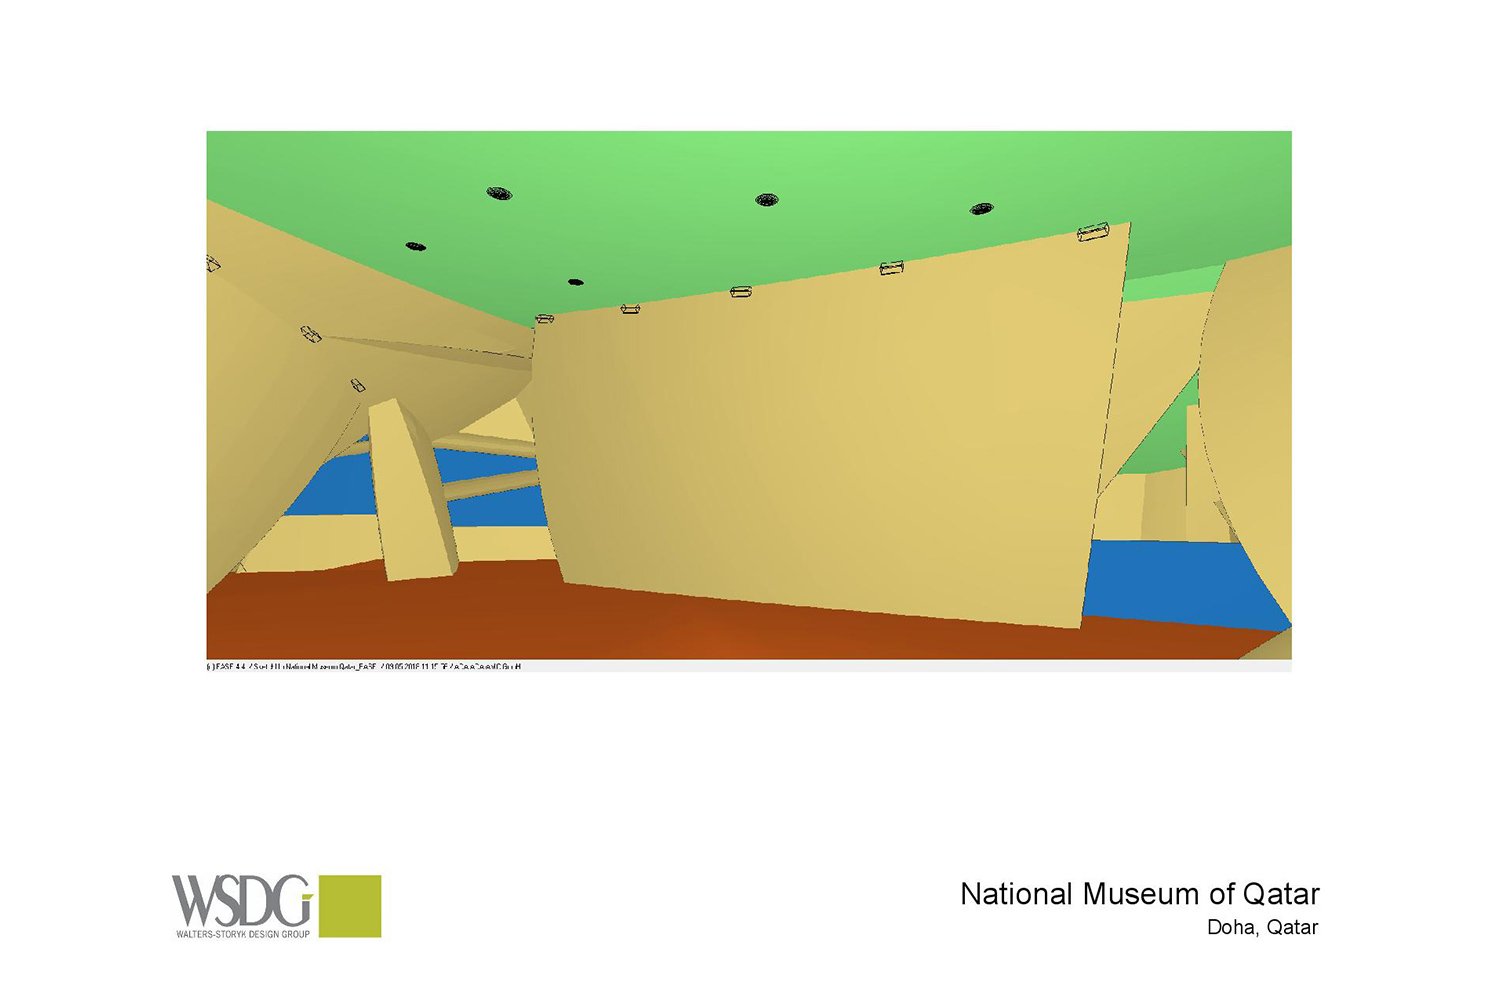 The National Museum of Qatar. WSDG was contracted to create a 3-D acoustic model of the space and make recommendations regarding appropriate speaker usage and placement. Acoustic 3D Model Drawing 2.